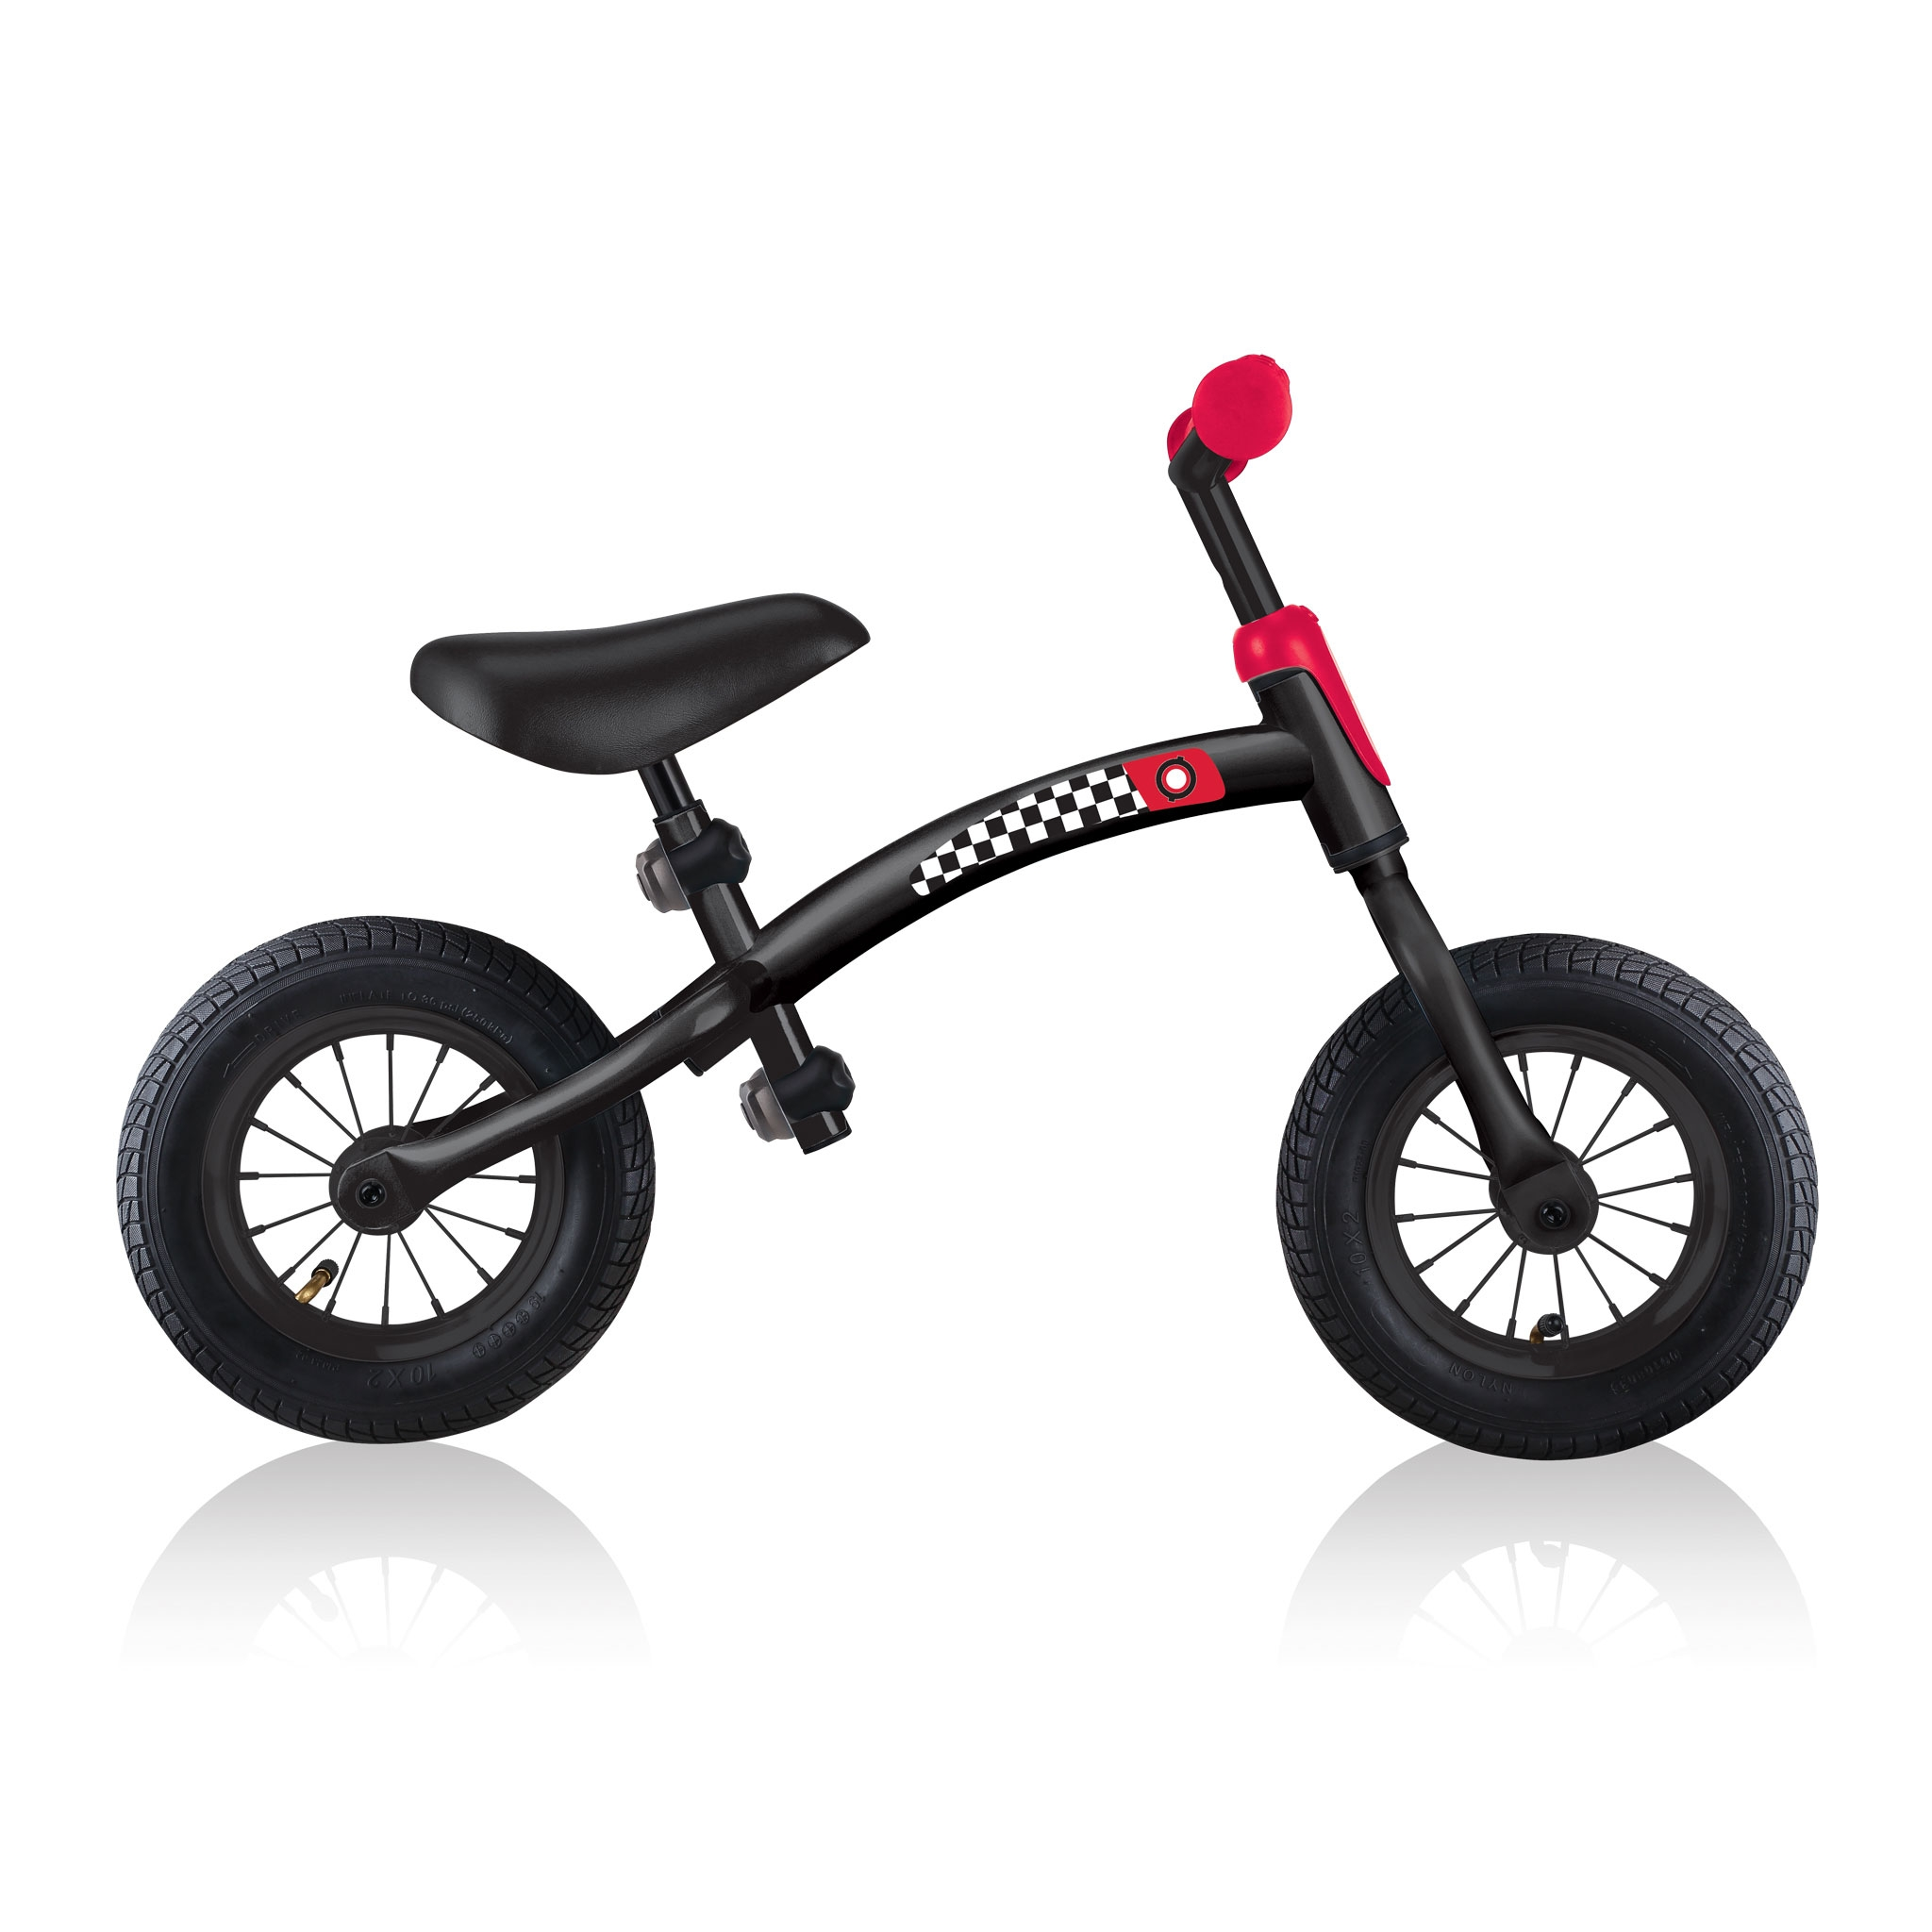 GO-BIKE-AIR-toddler-balance-bike-with-robust-steel-frame-and-shock-absorbing-rubber-tyres_black-red 5